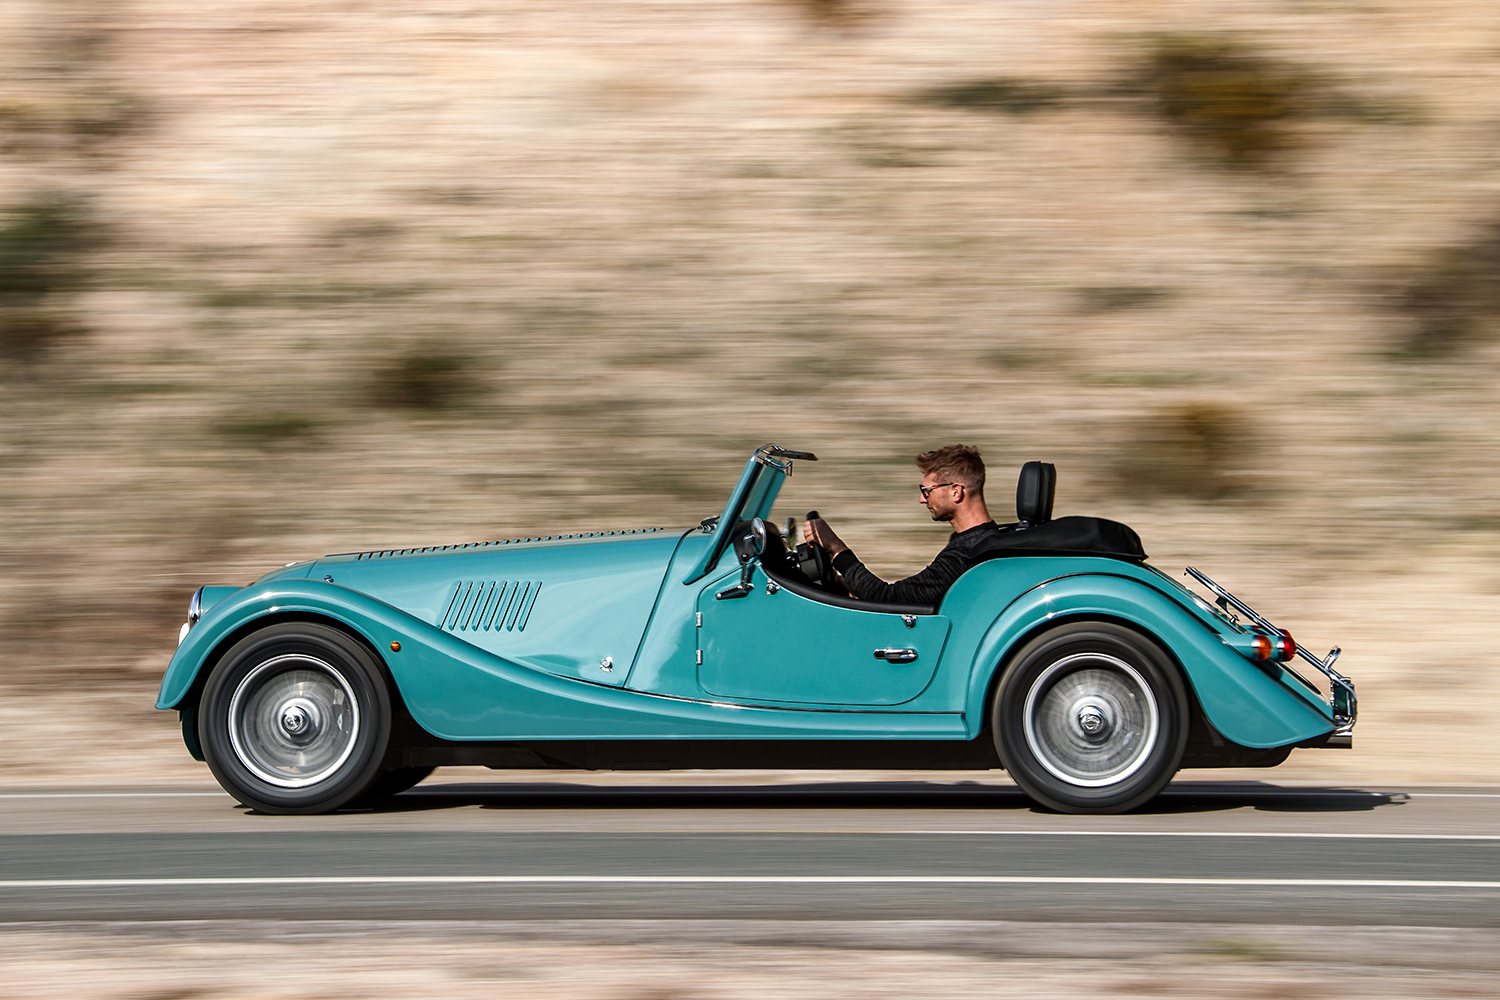 Two-seat roadster car driving